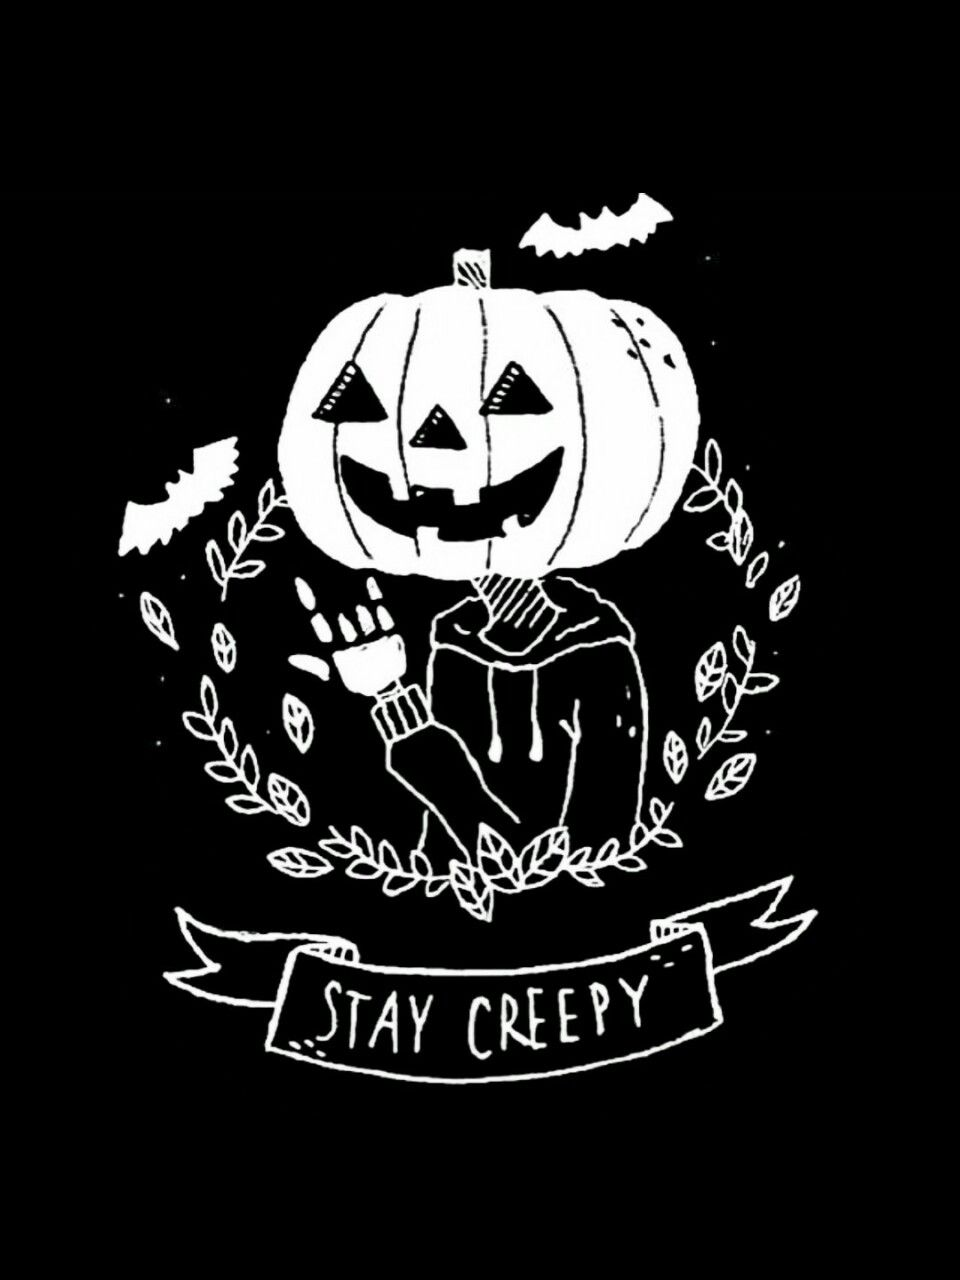 stay creepylife in full colour